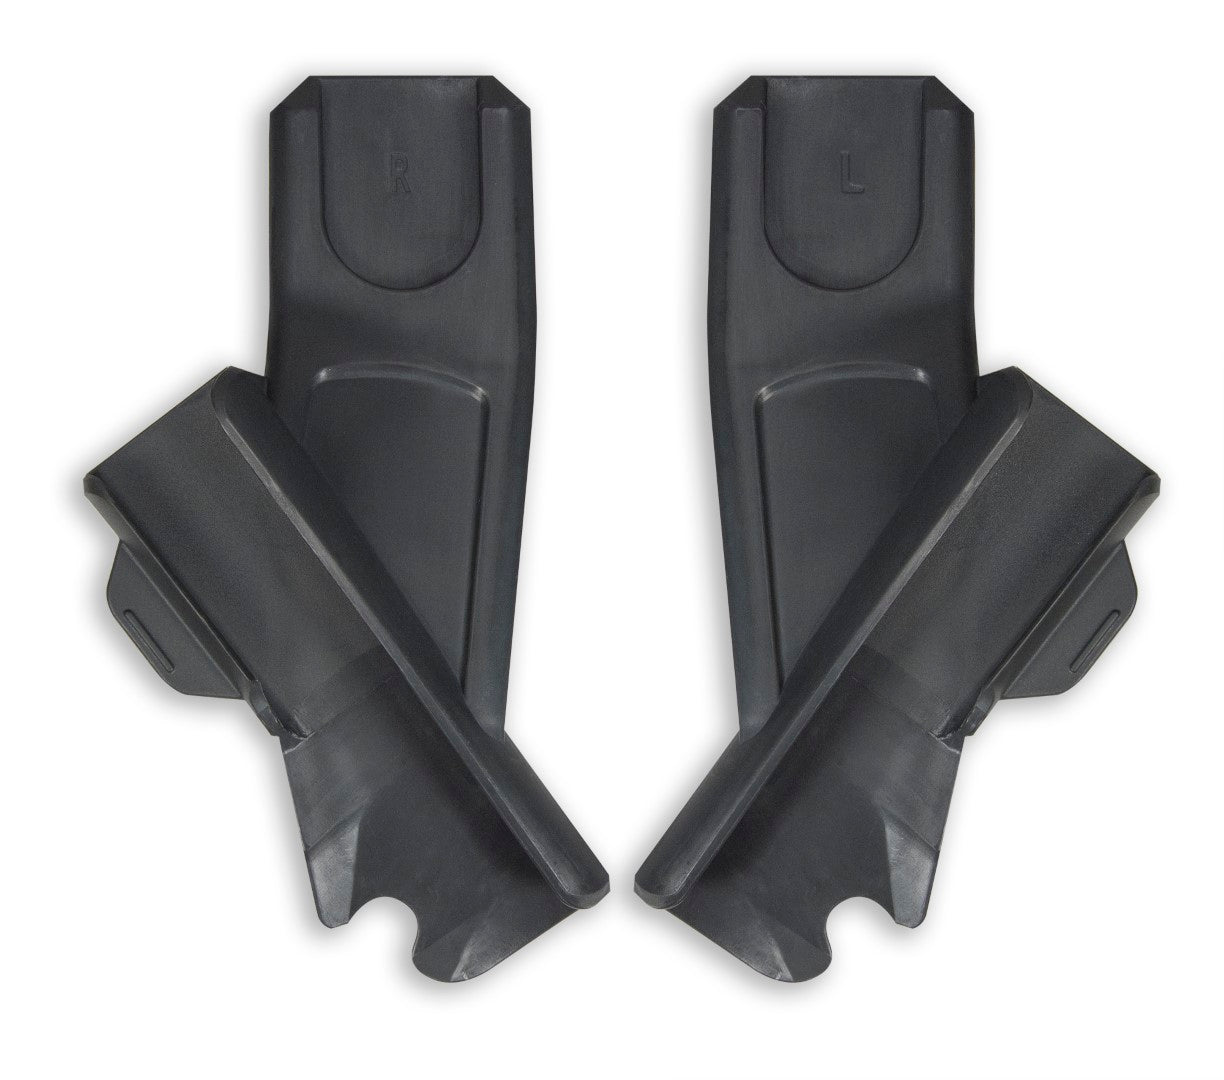 Lower Car Seat Adapters